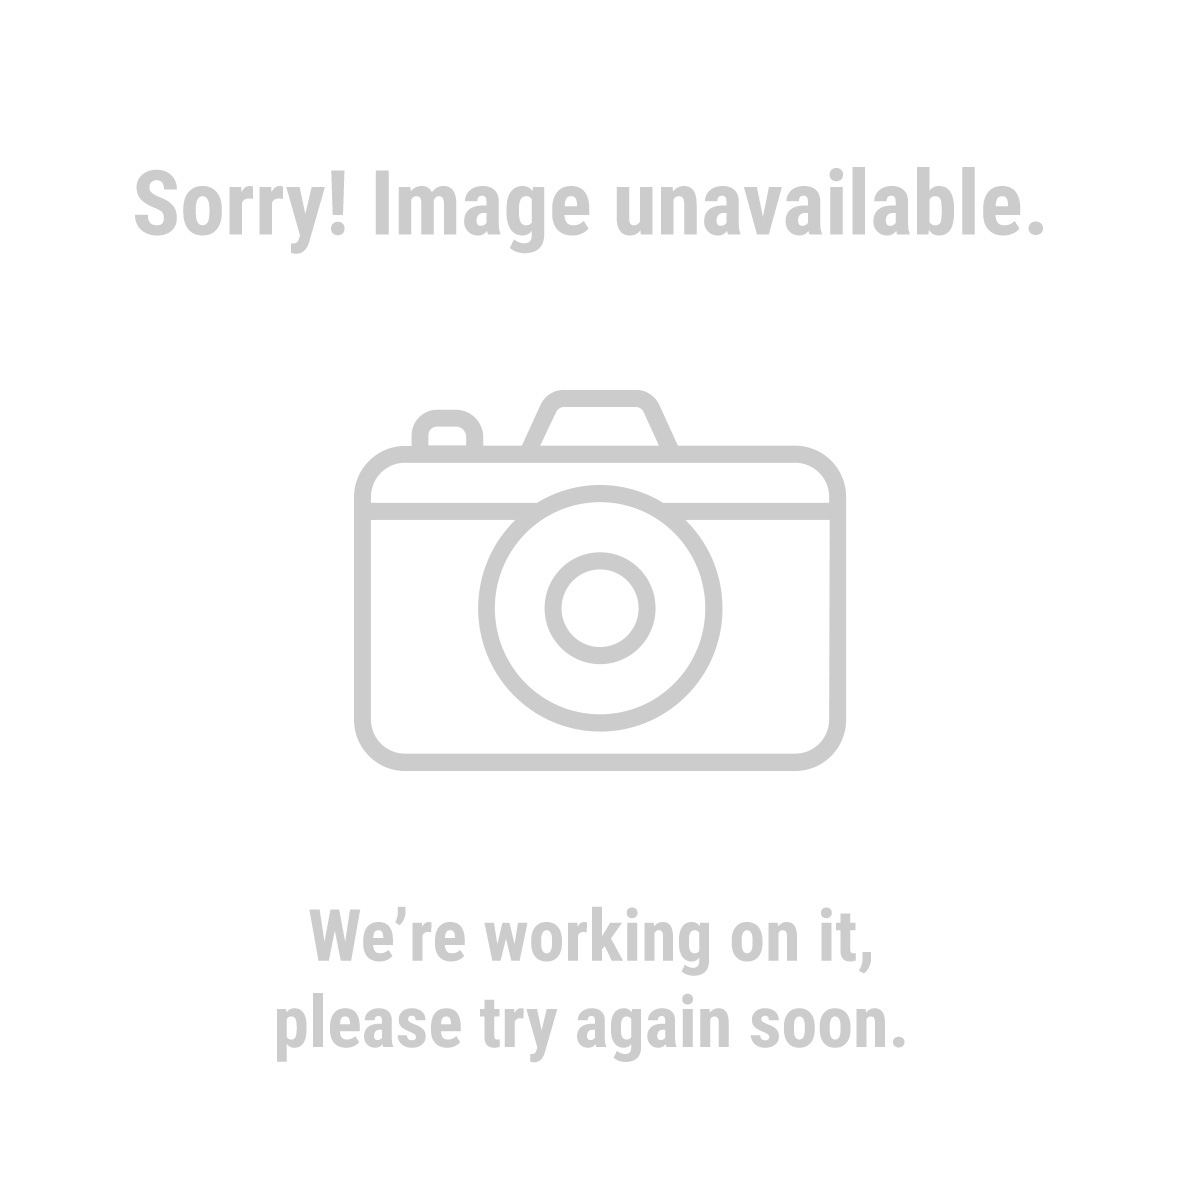 HFT 61578 50 Piece Trash Bags - 45 Gallon